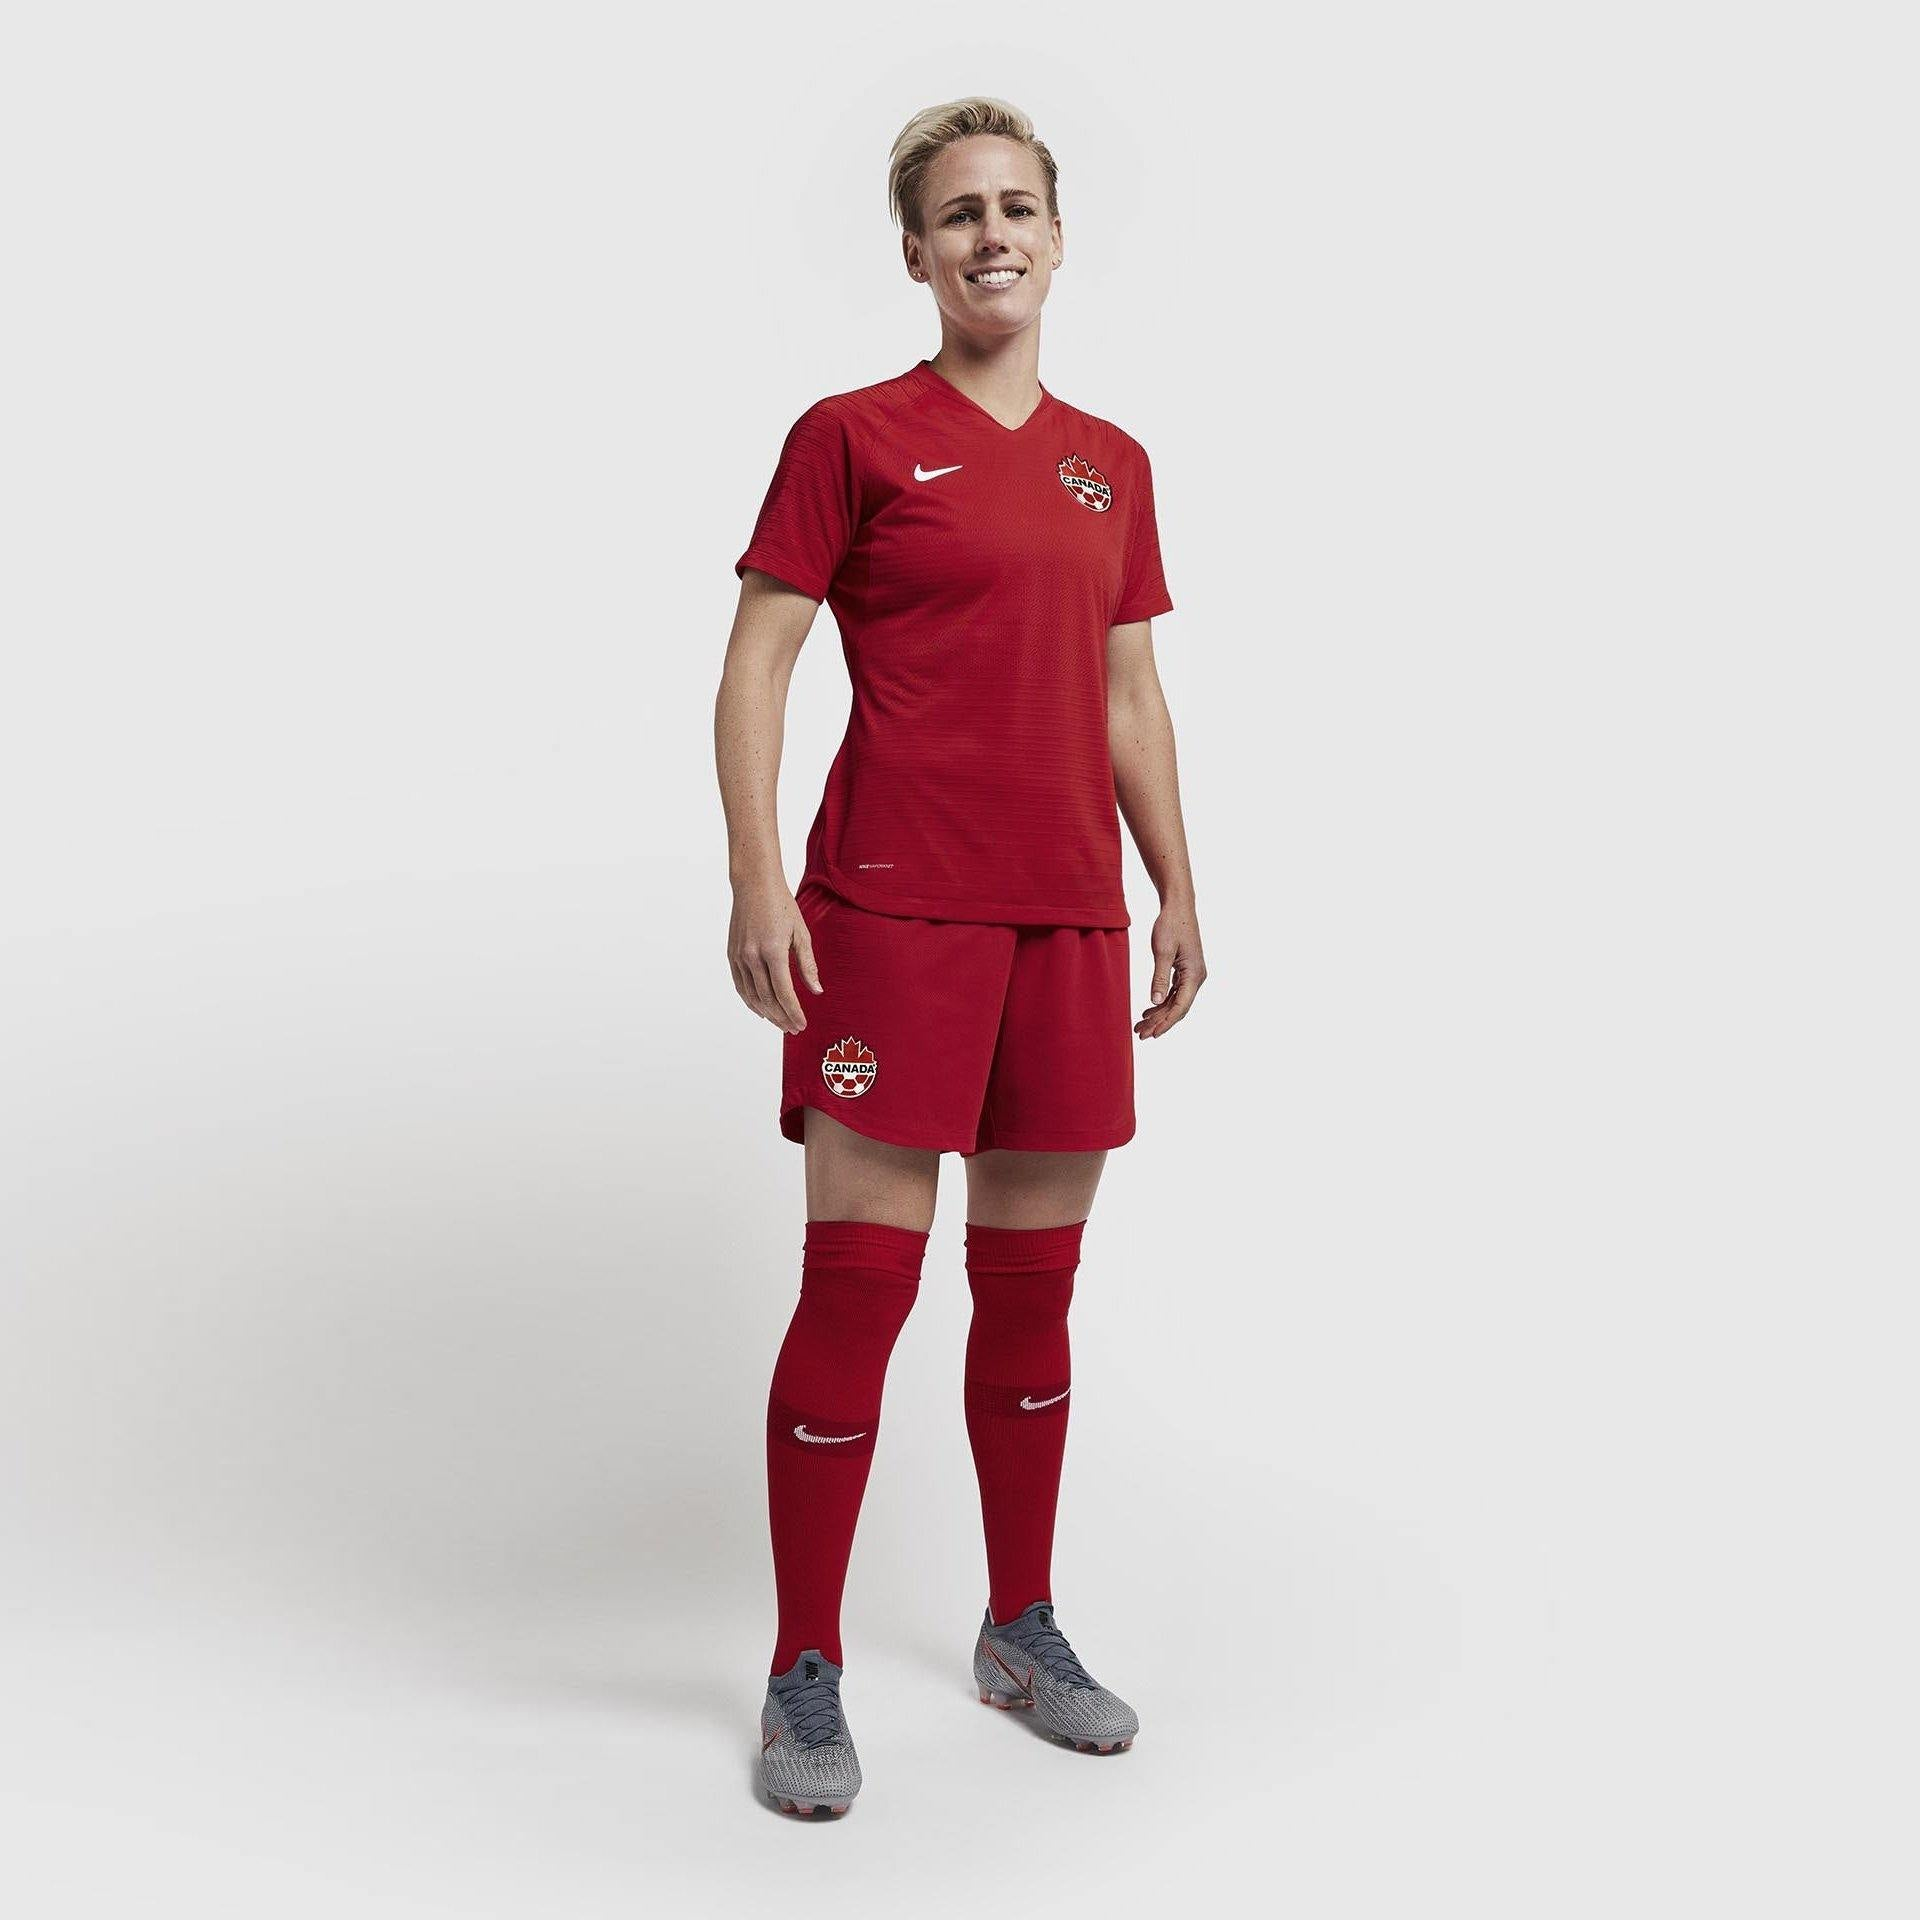 Maillot Femme Canada 2020 Nike Football Foot Coupe Du Monde freeshipping - Foot Online